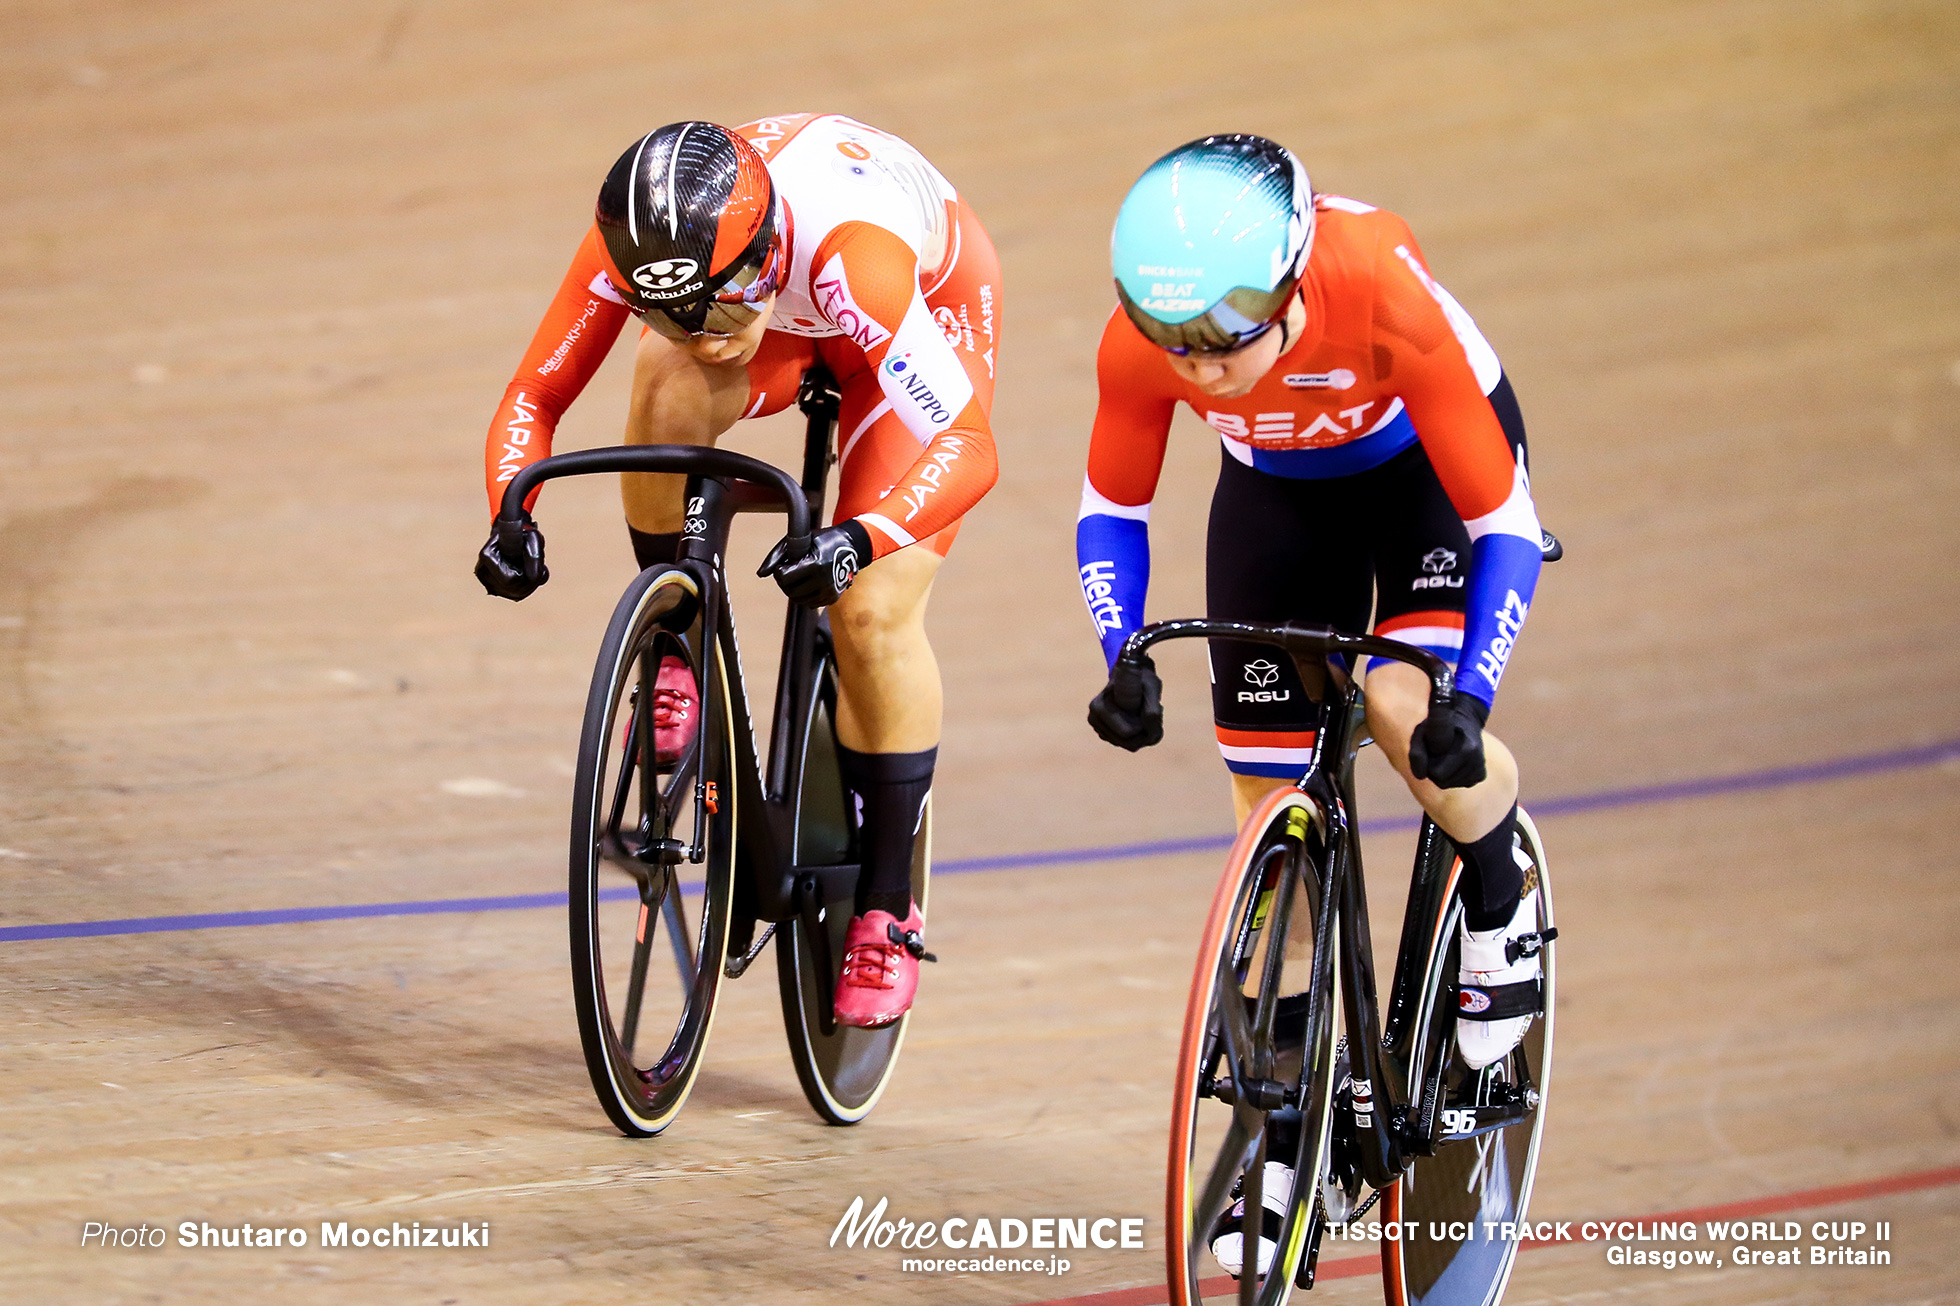 1st Round / Women's Sprint / TISSOT UCI TRACK CYCLING WORLD CUP II, Glasgow, Great Britain